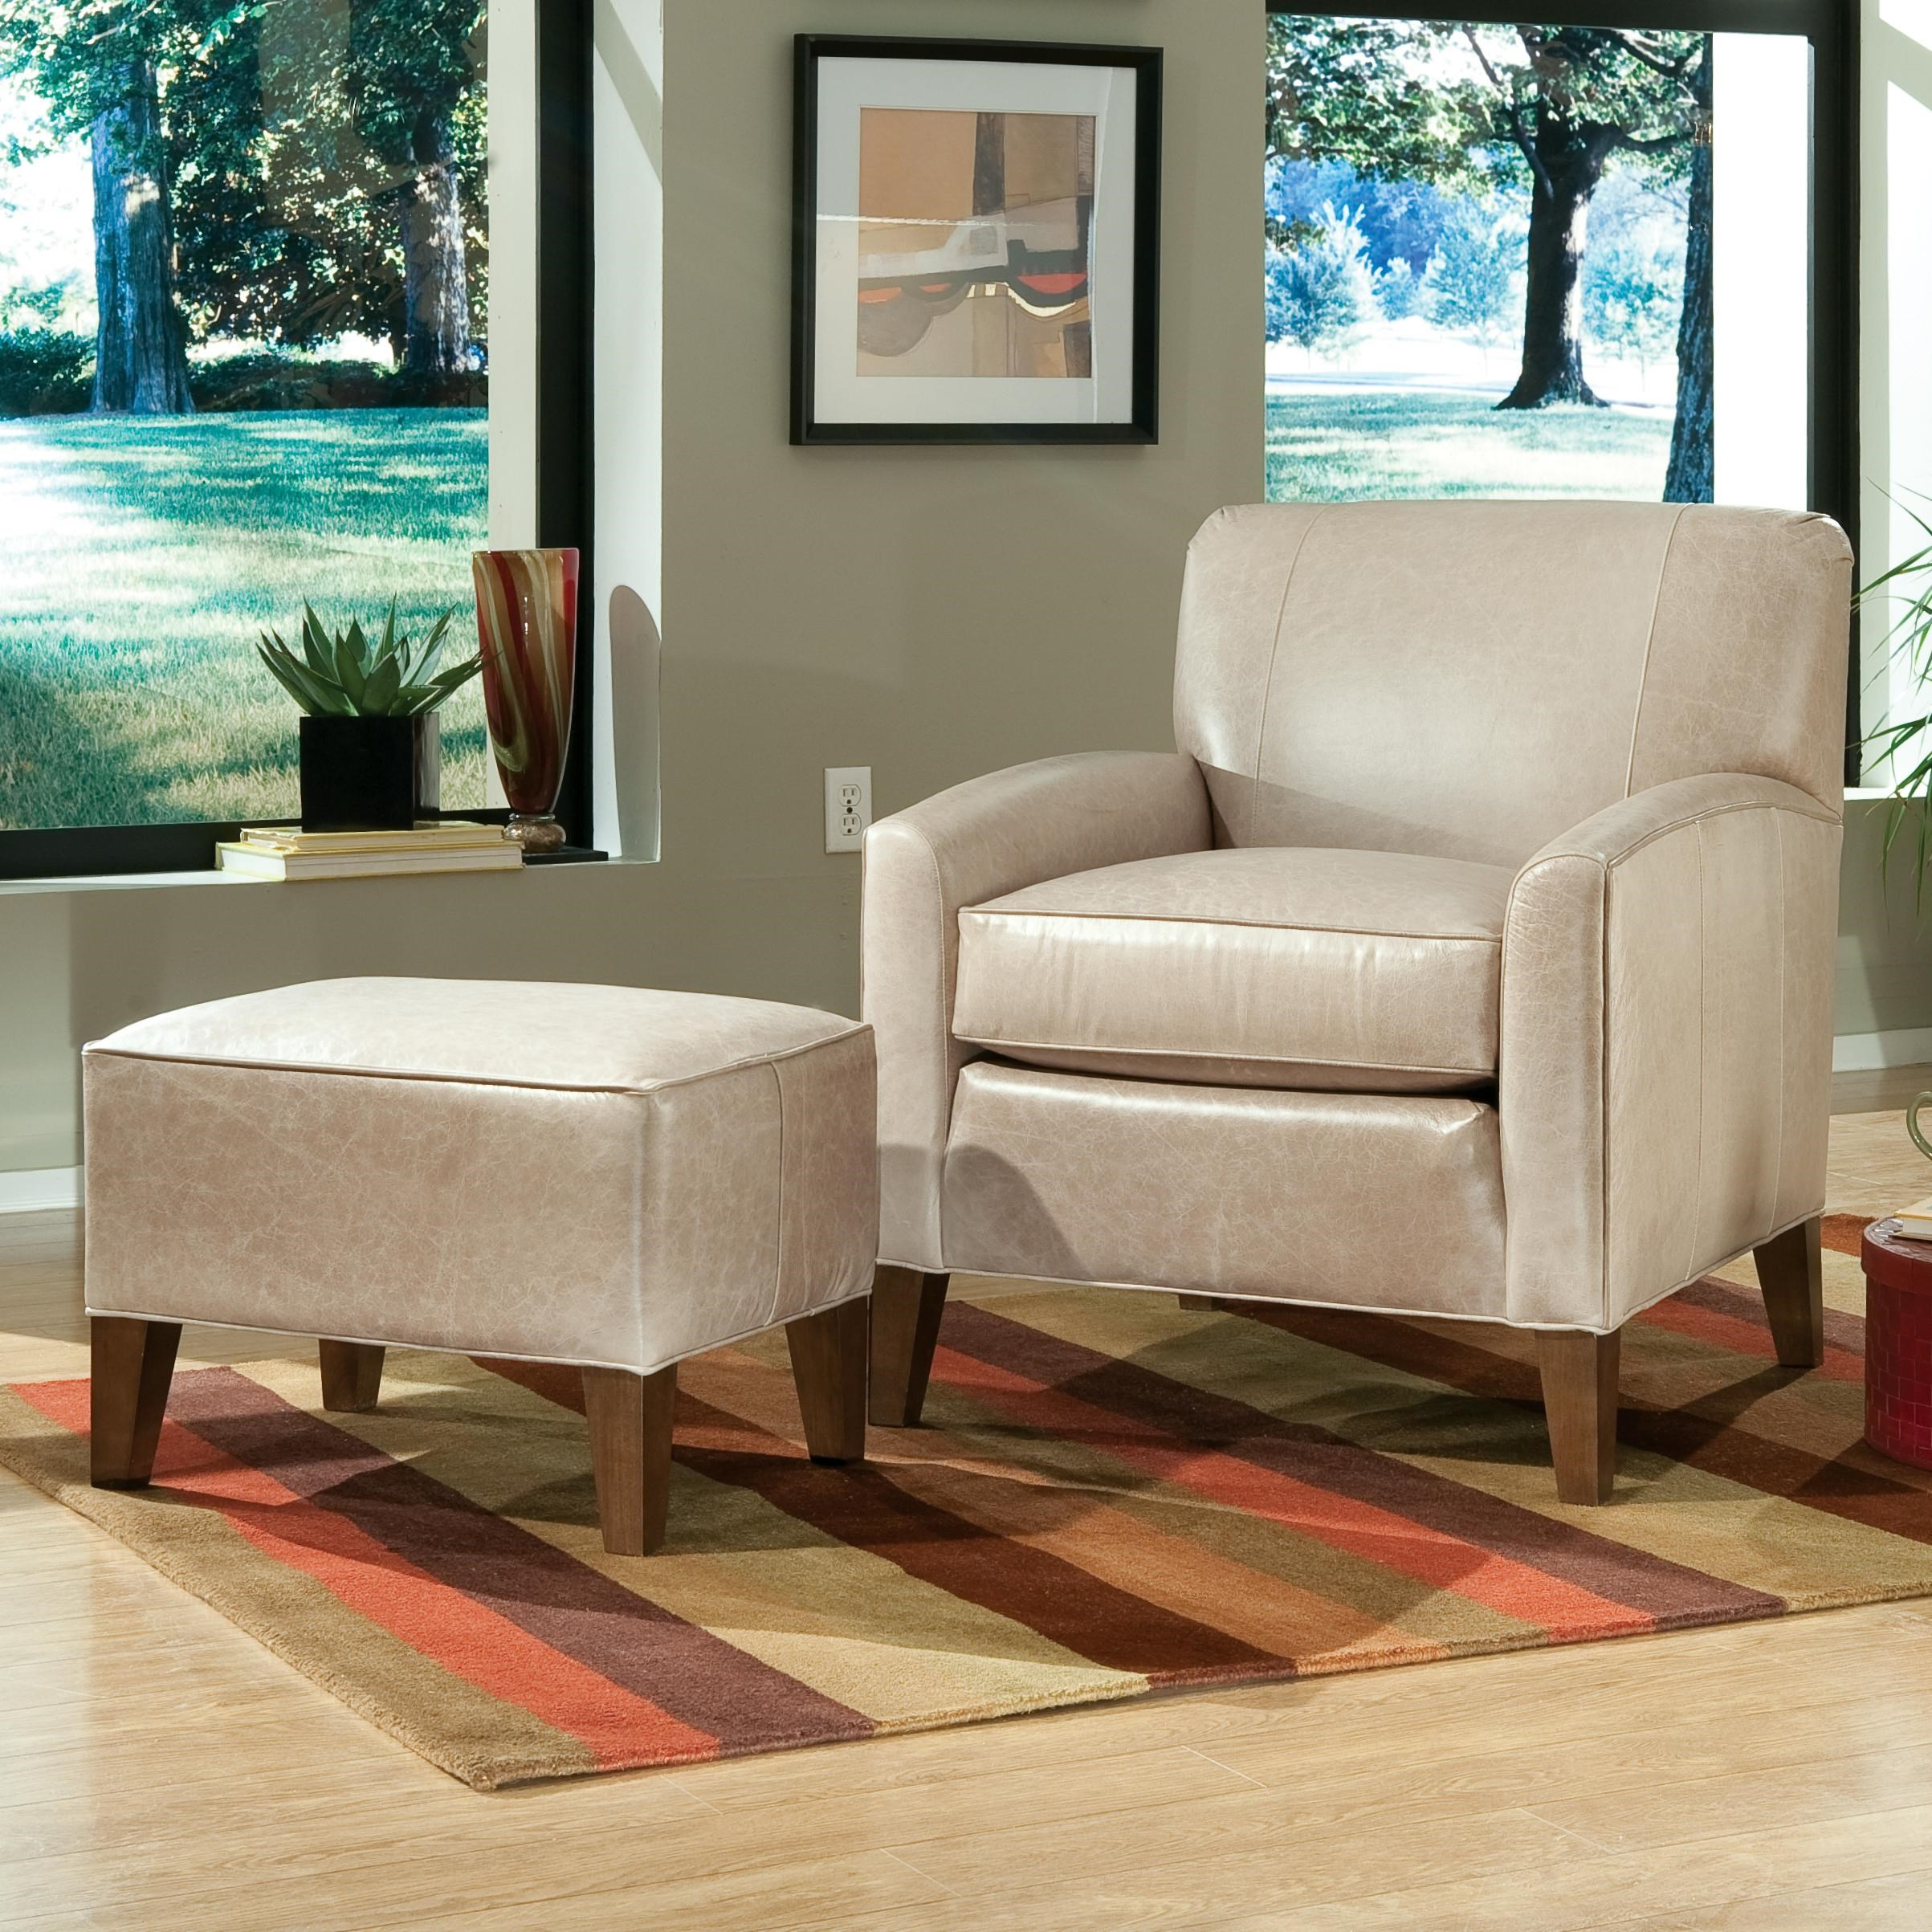 Smith Brothers Accent Chairs And Ottomans SB Contemporary Chair And Ottoman  With Tapered Wood Legs